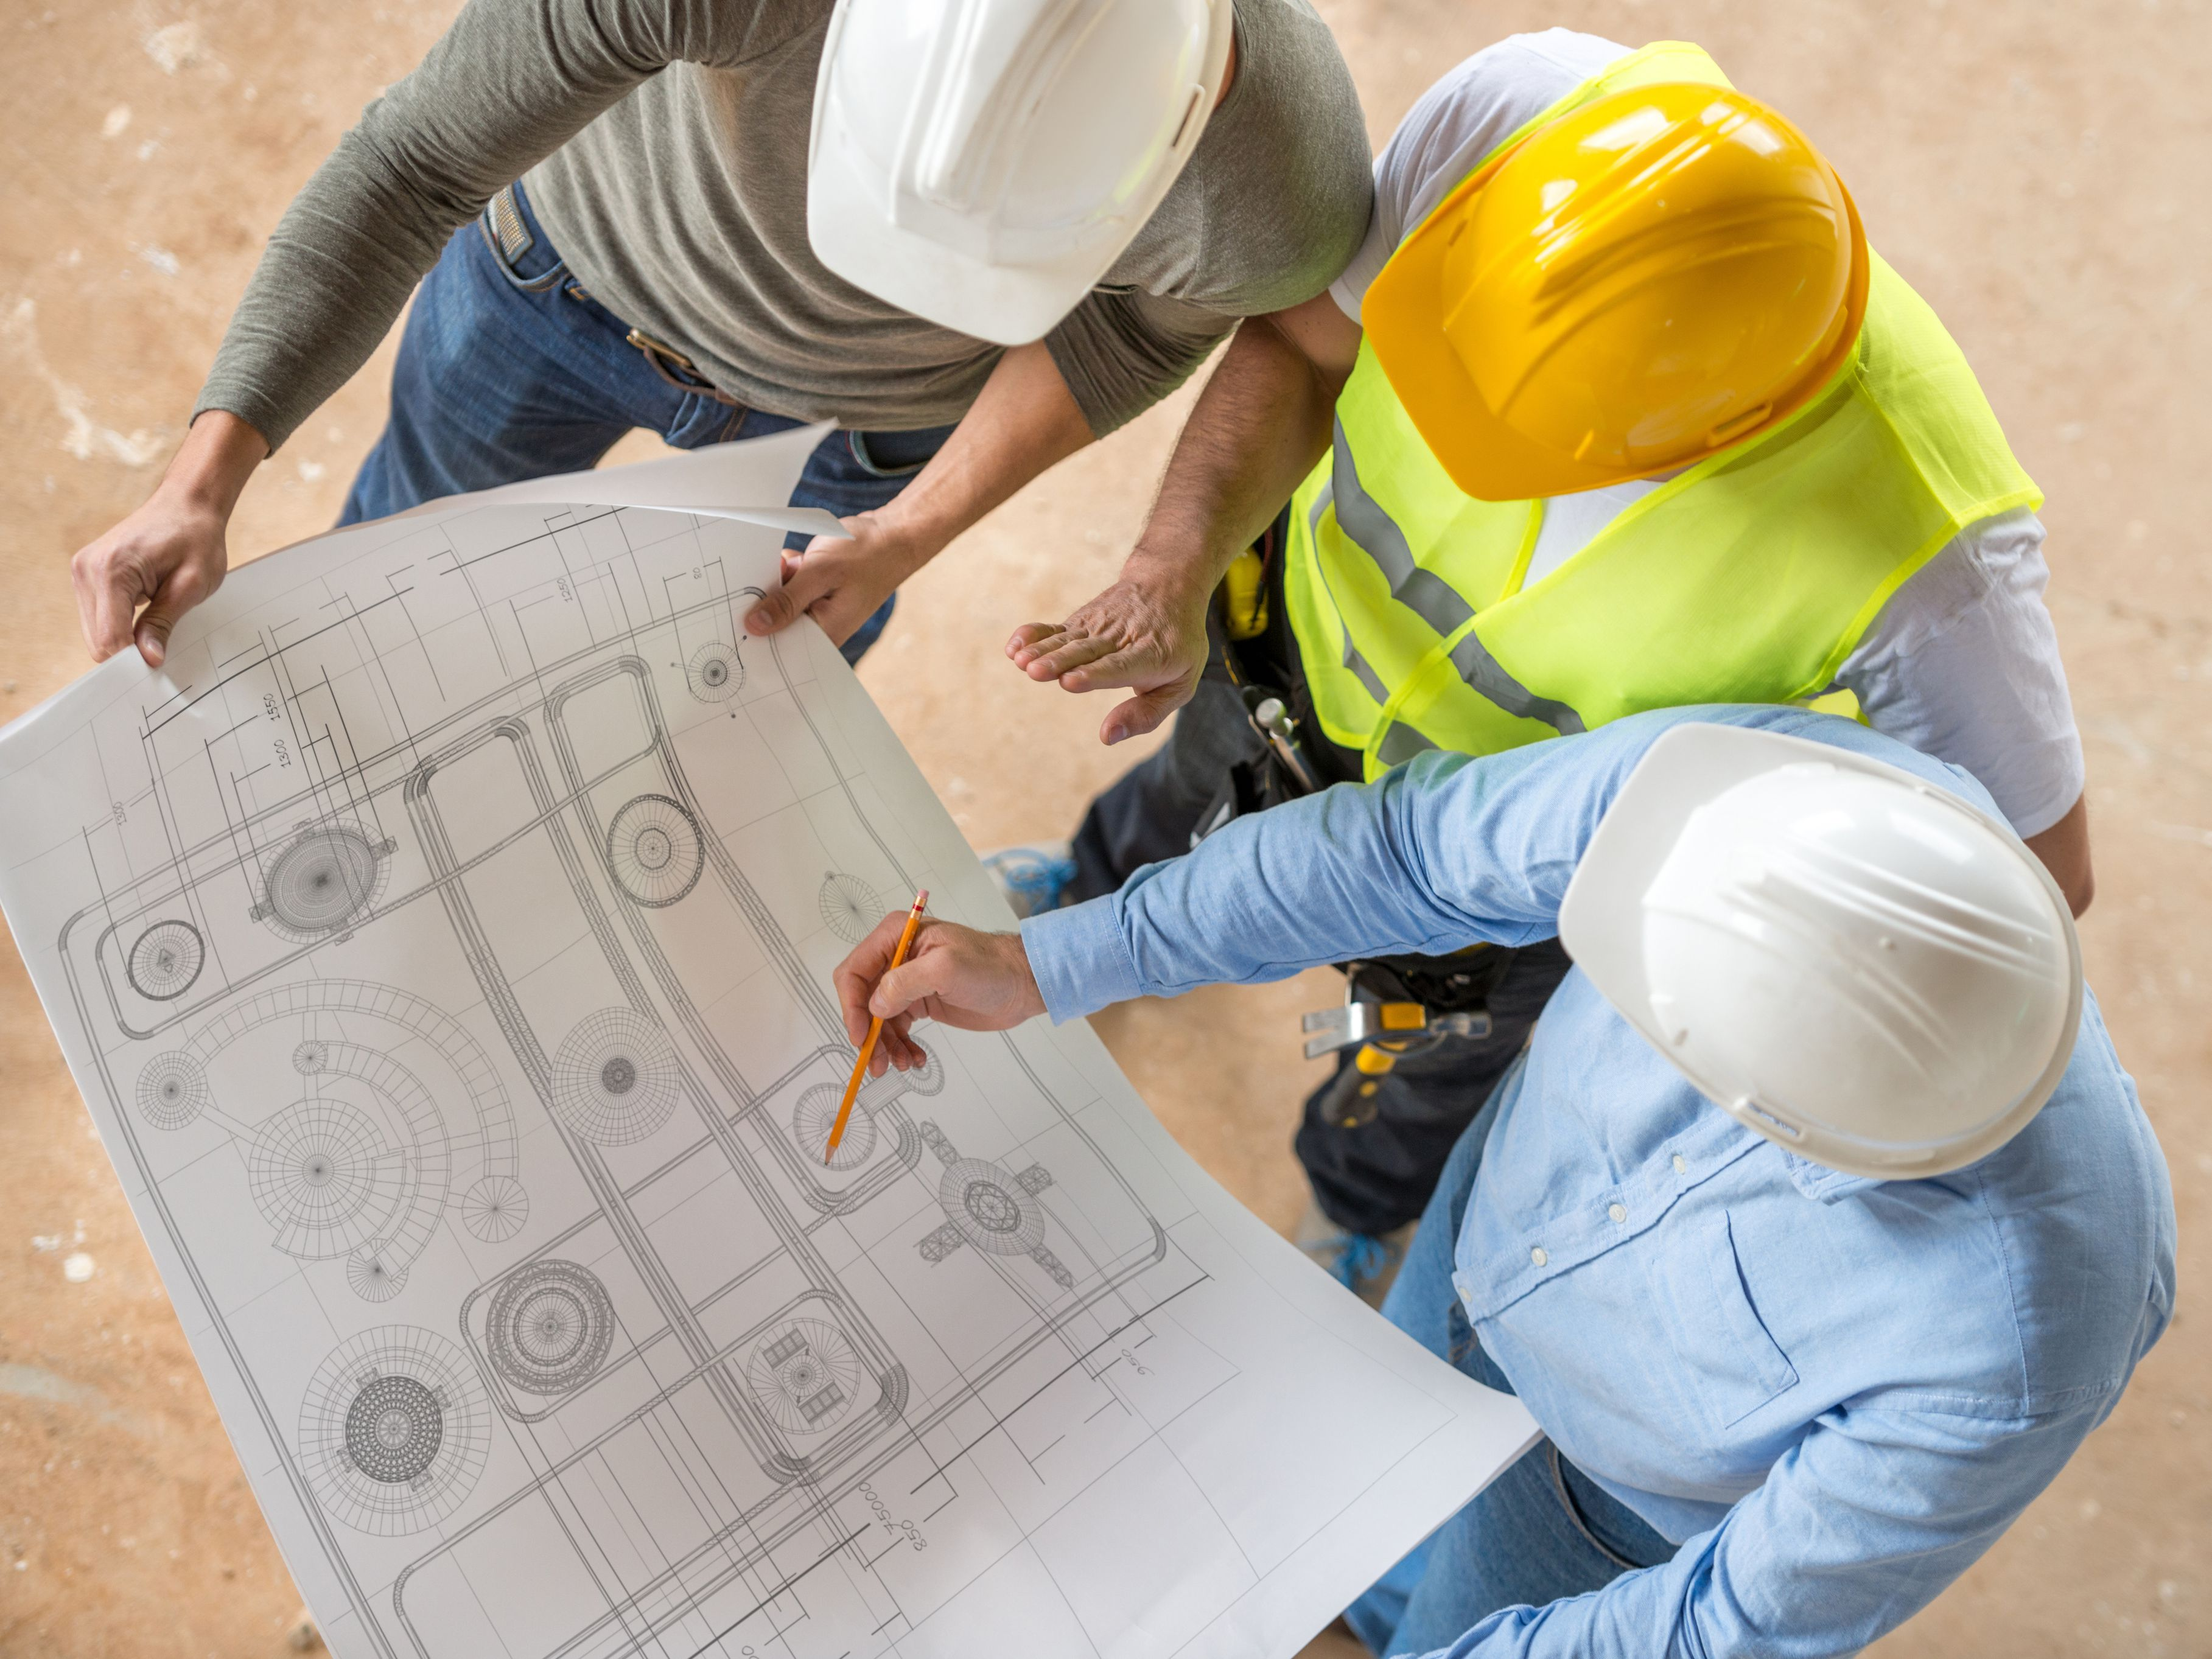 Civil Engineer Skills for Resumes, Cover Letters, and Interviews